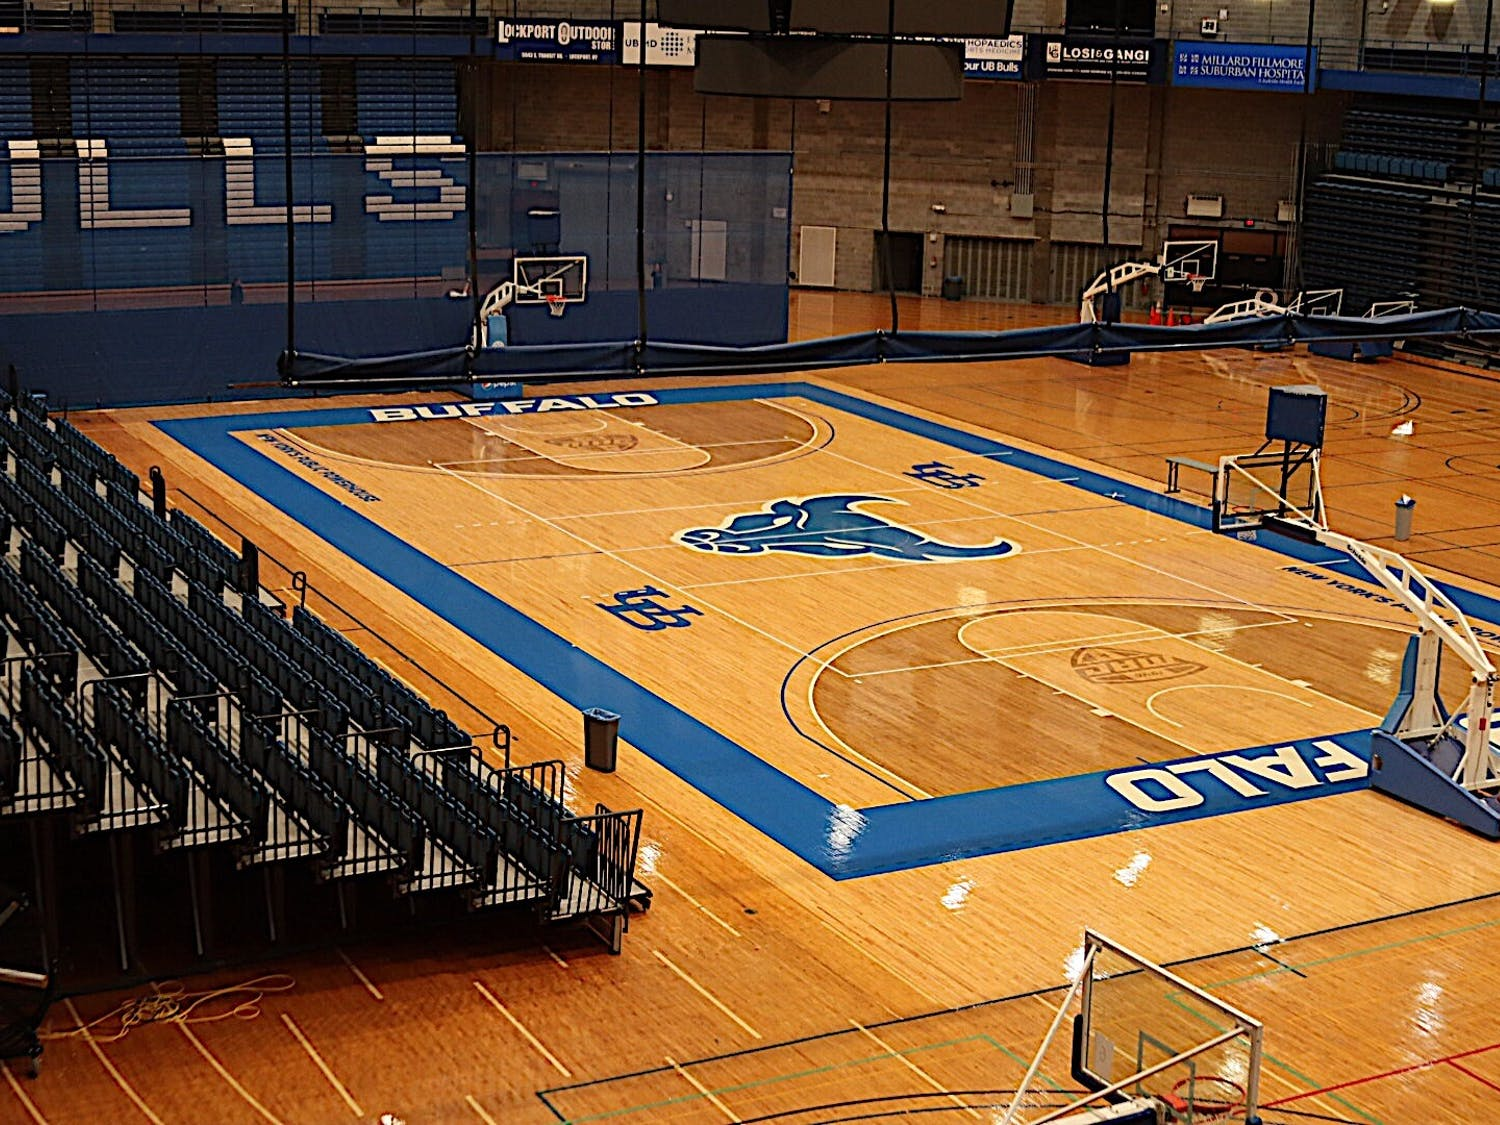 Alumni Arena home to UB men's and women's basketball teams, the women's volleyball team, and wrestling team.